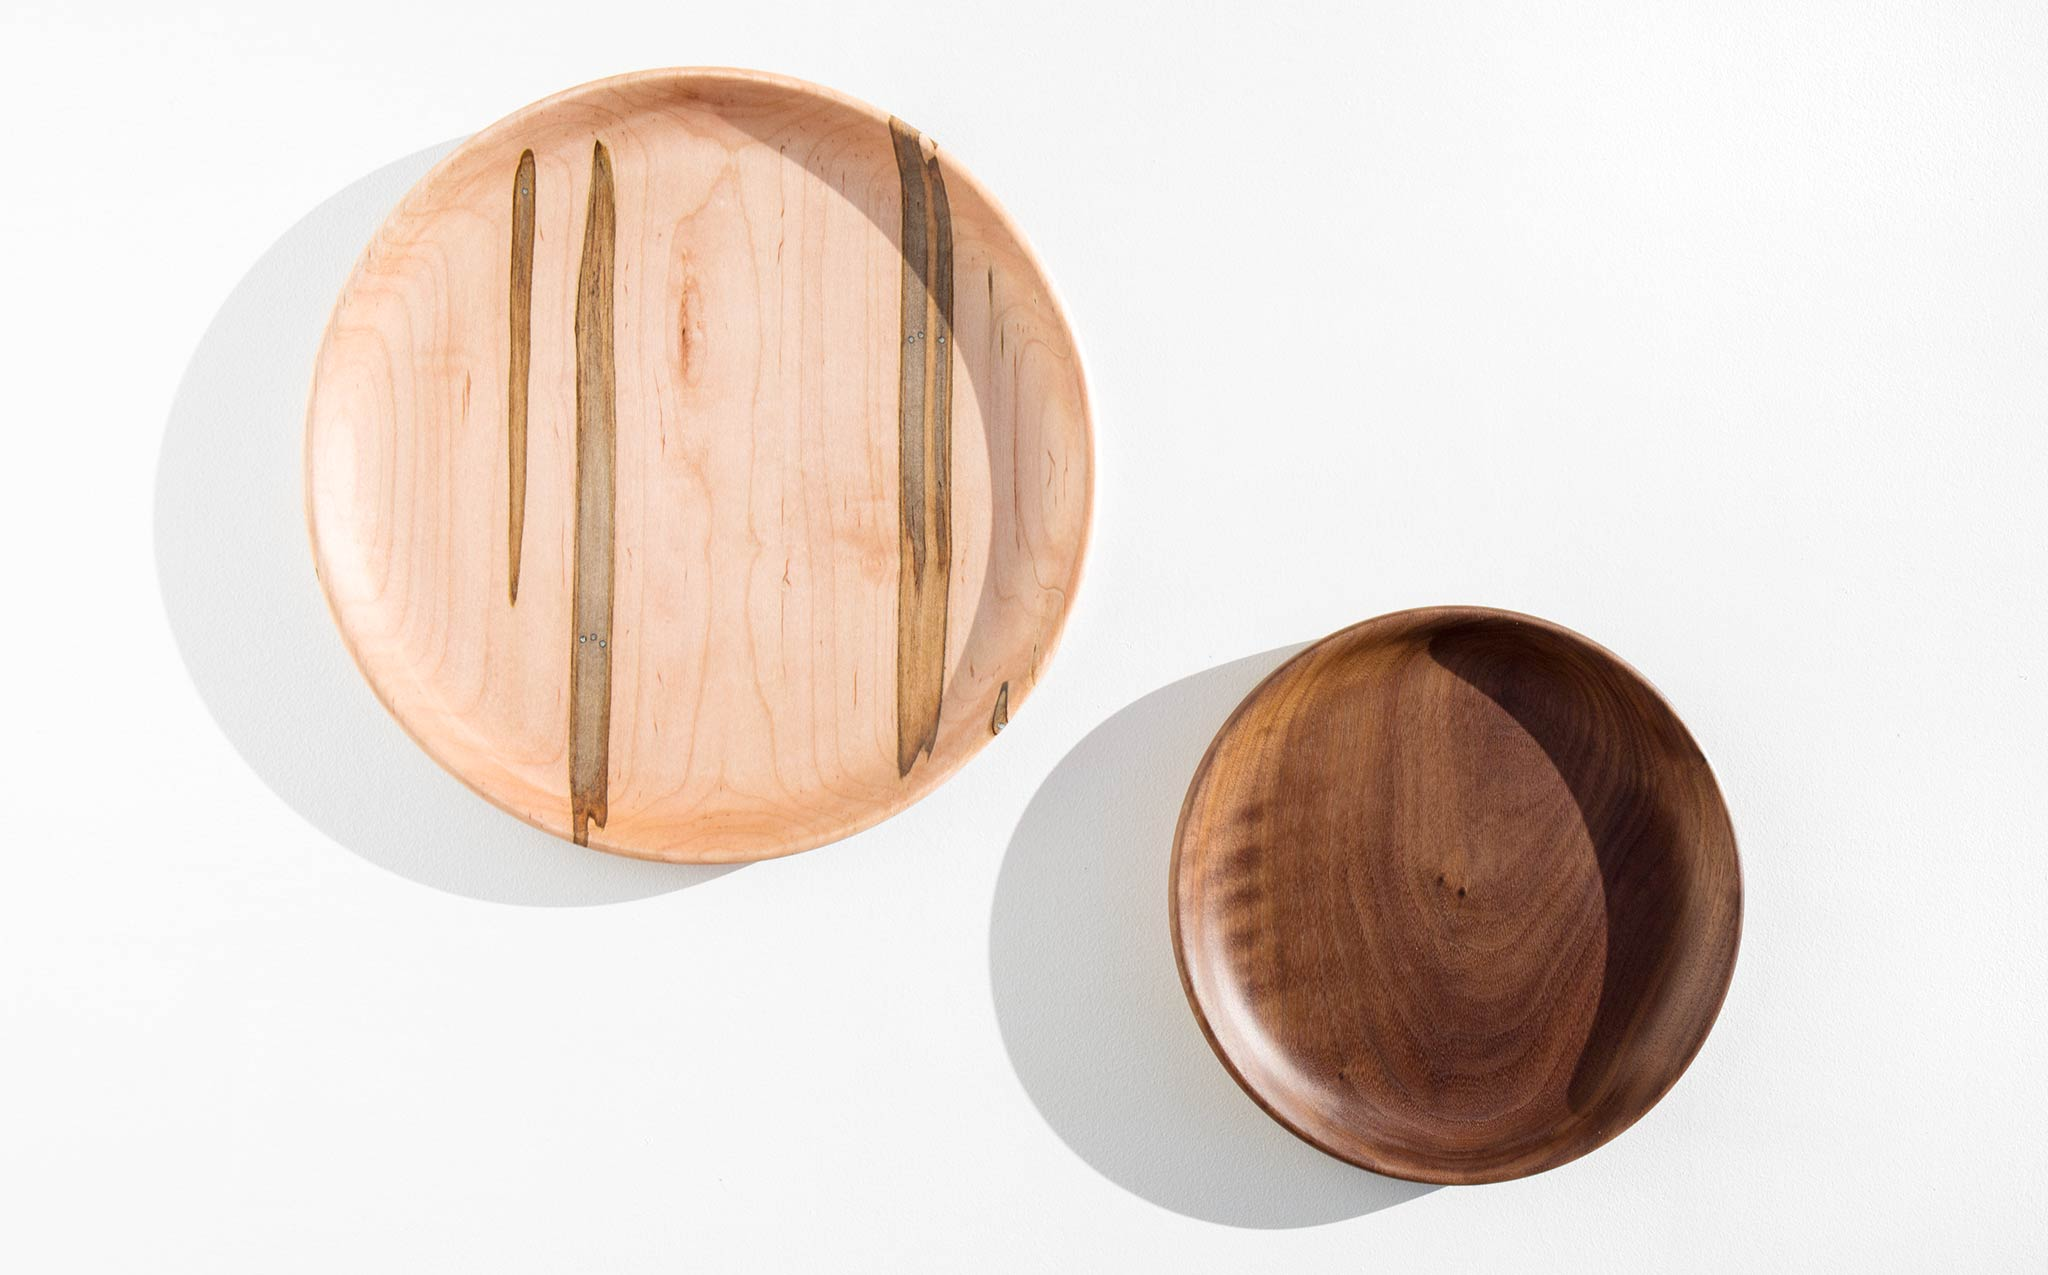 Mod Tribe Design Ambrosia Maple and Walnut Plate Set